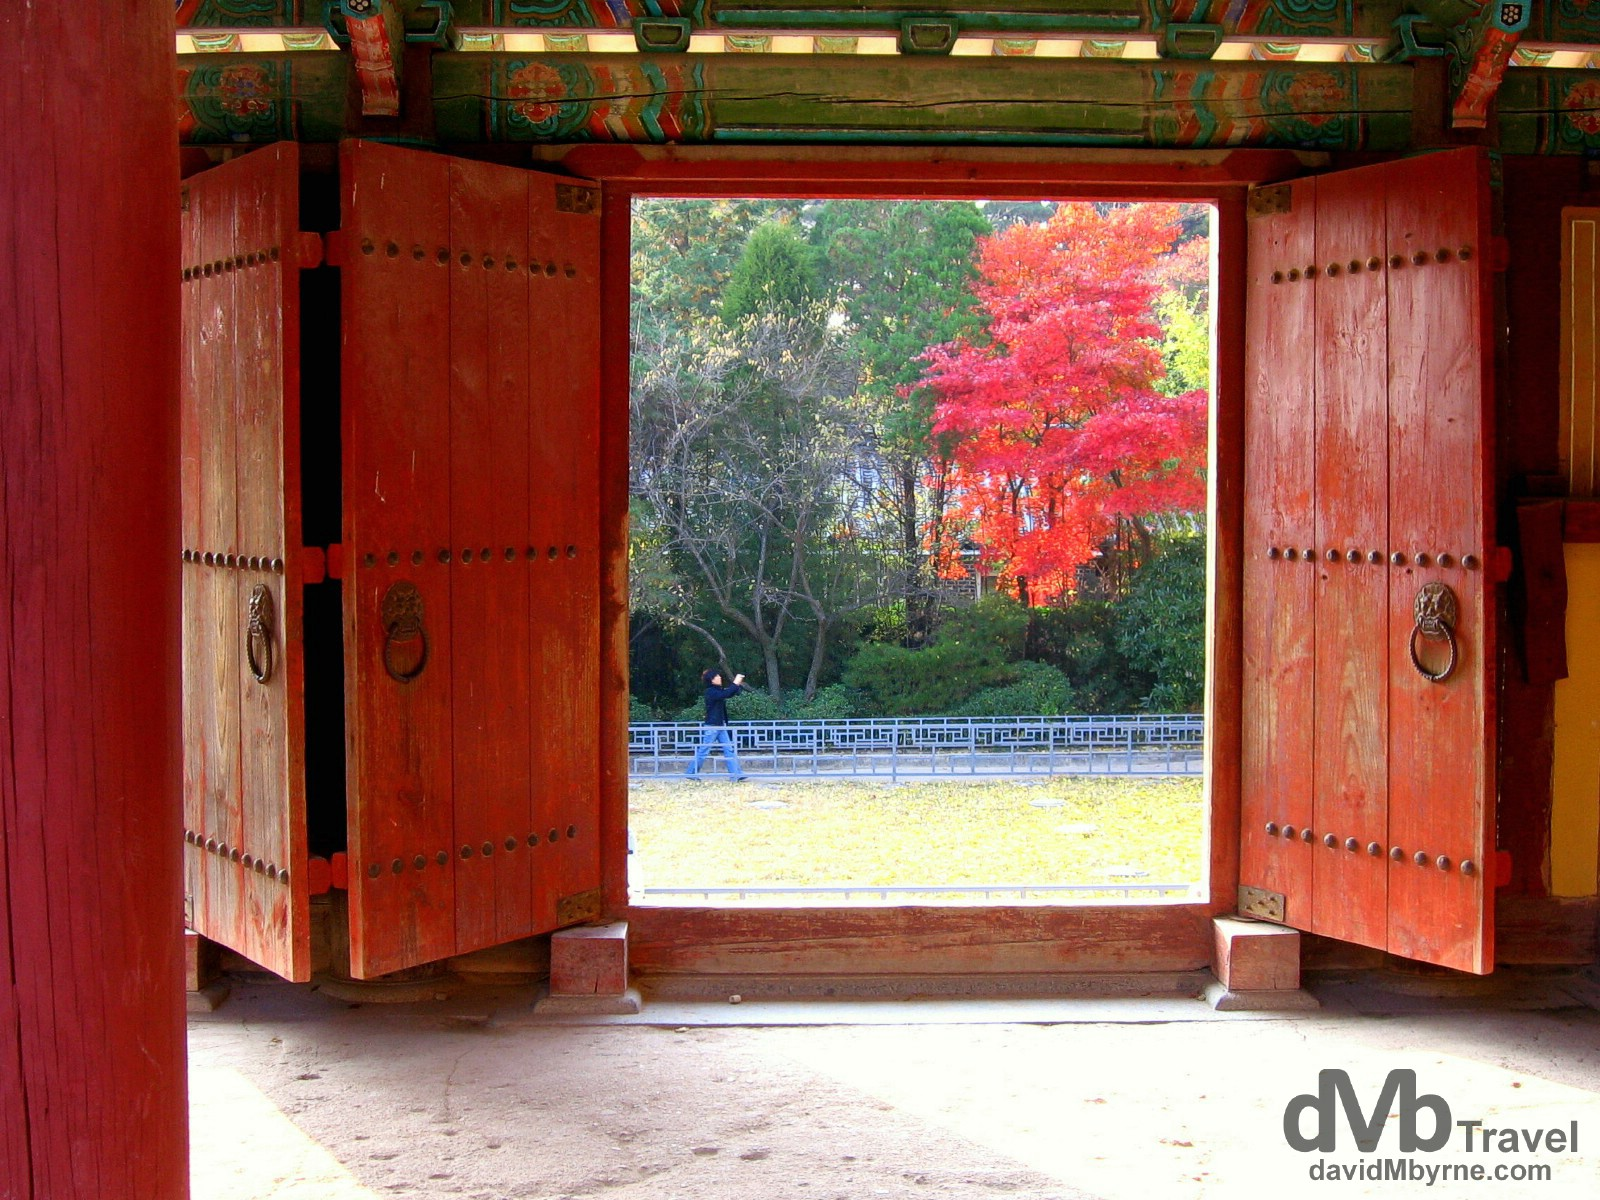 Doors in the grounds of the UNESCO-listed Bulguksa Temple, Gyeongju South Korea. November 10th, 2007.